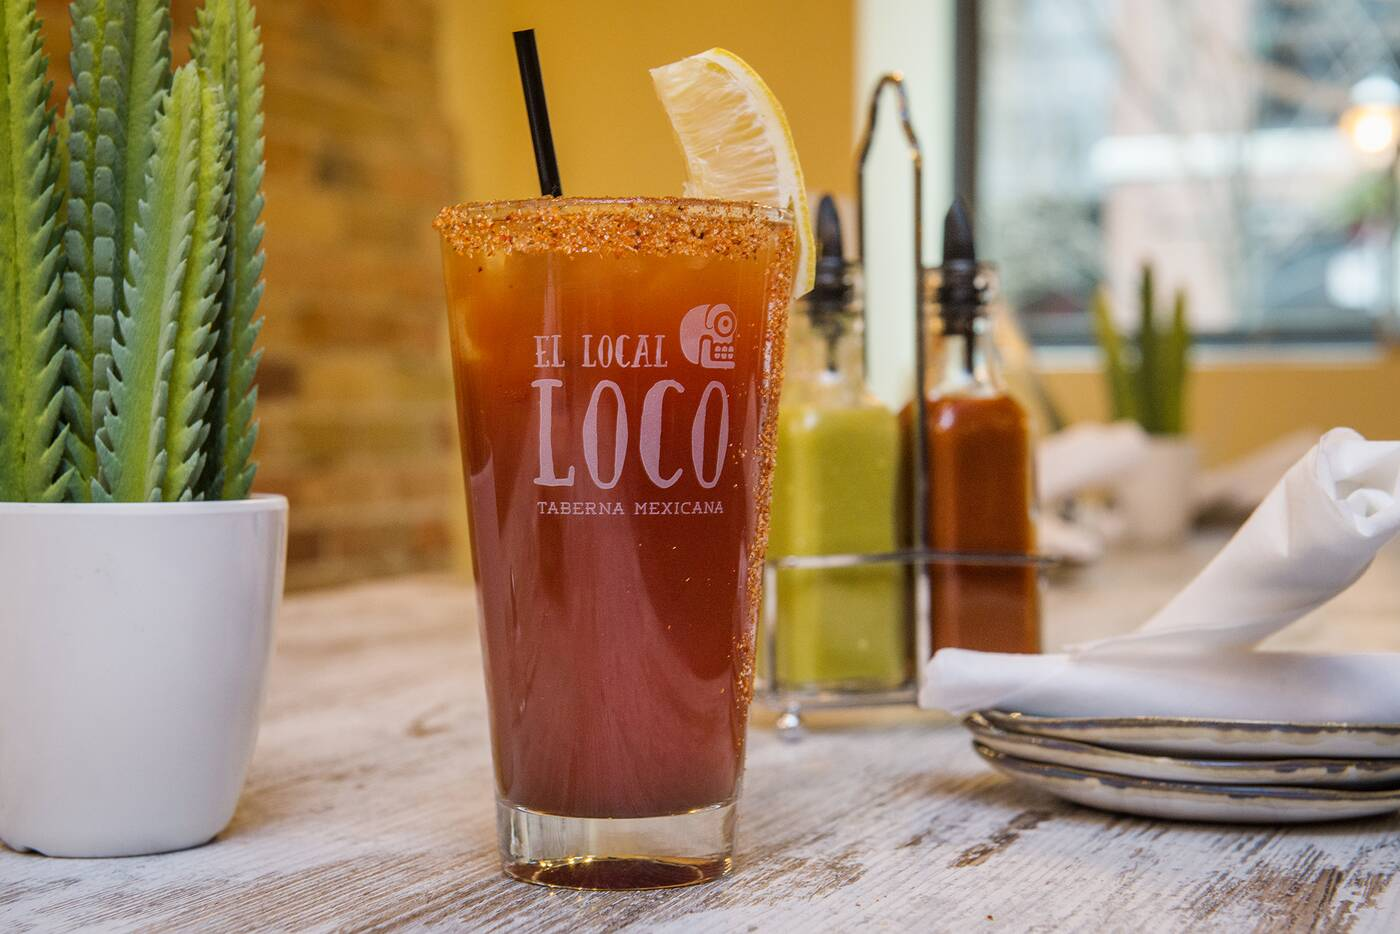 El Local Loco Toronto